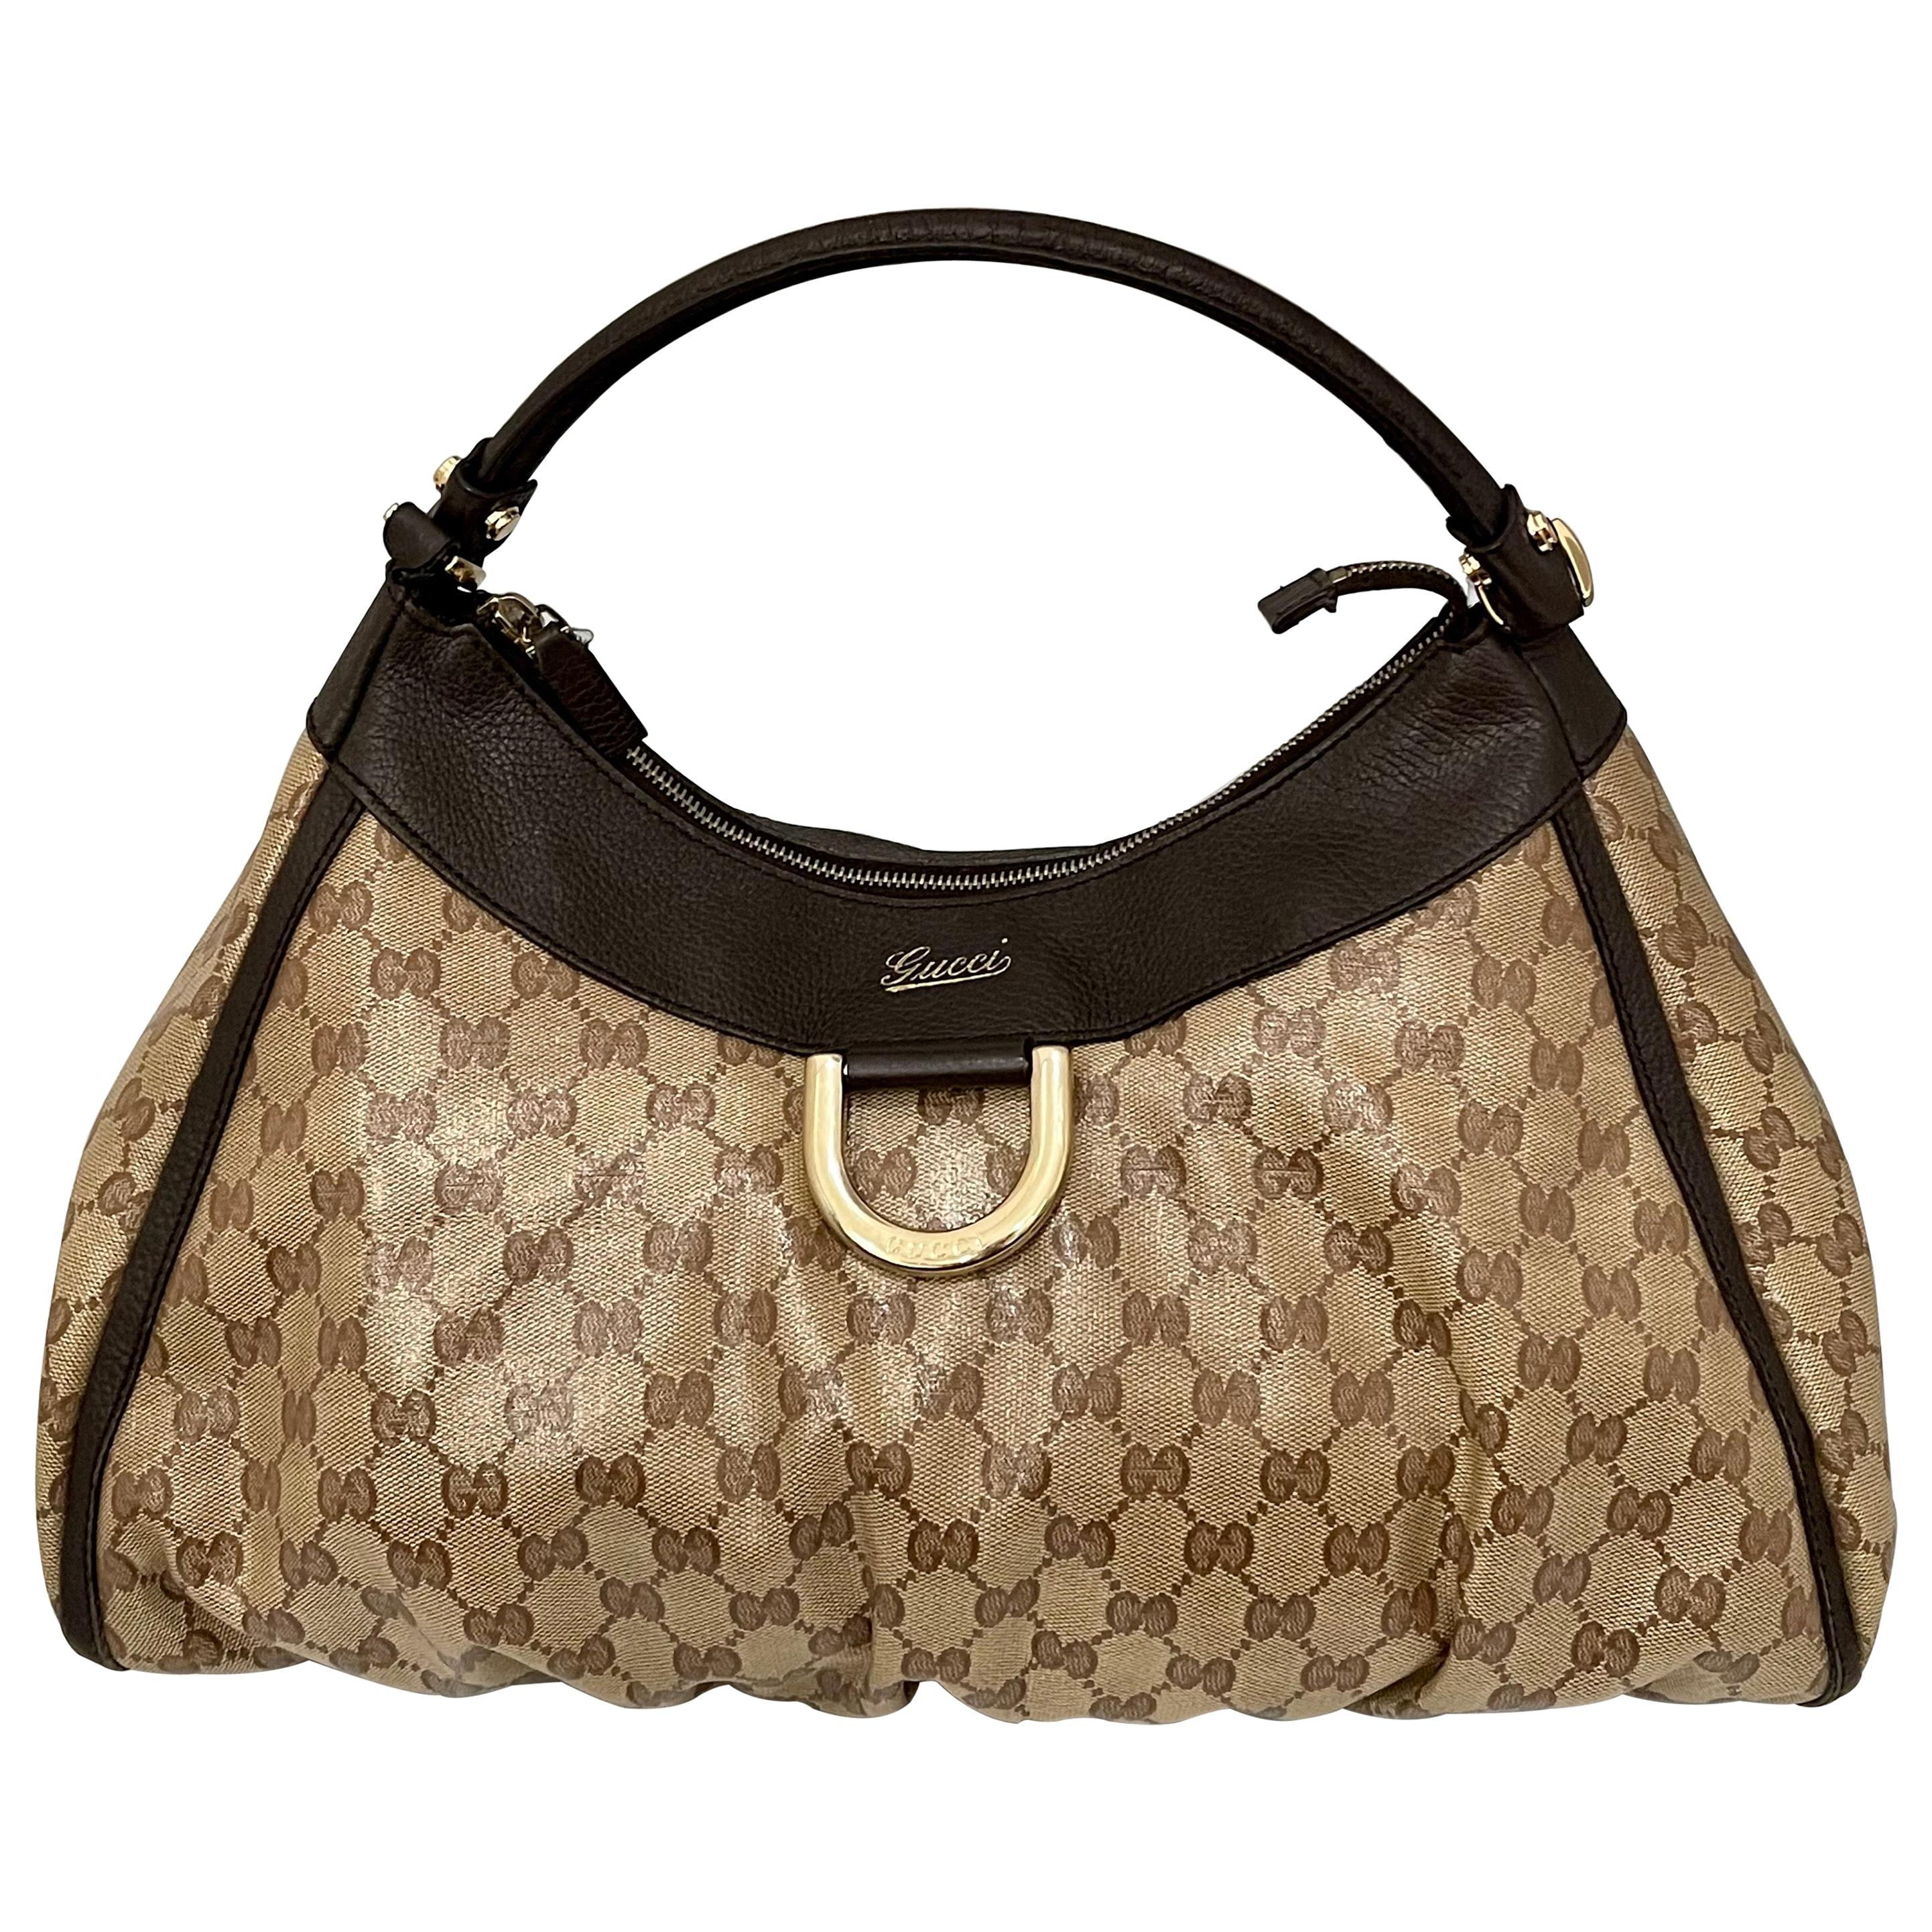 Authentic GUCCI Shoulder Hand Bag GG Canvas Leather Brown Beige like  Brand New